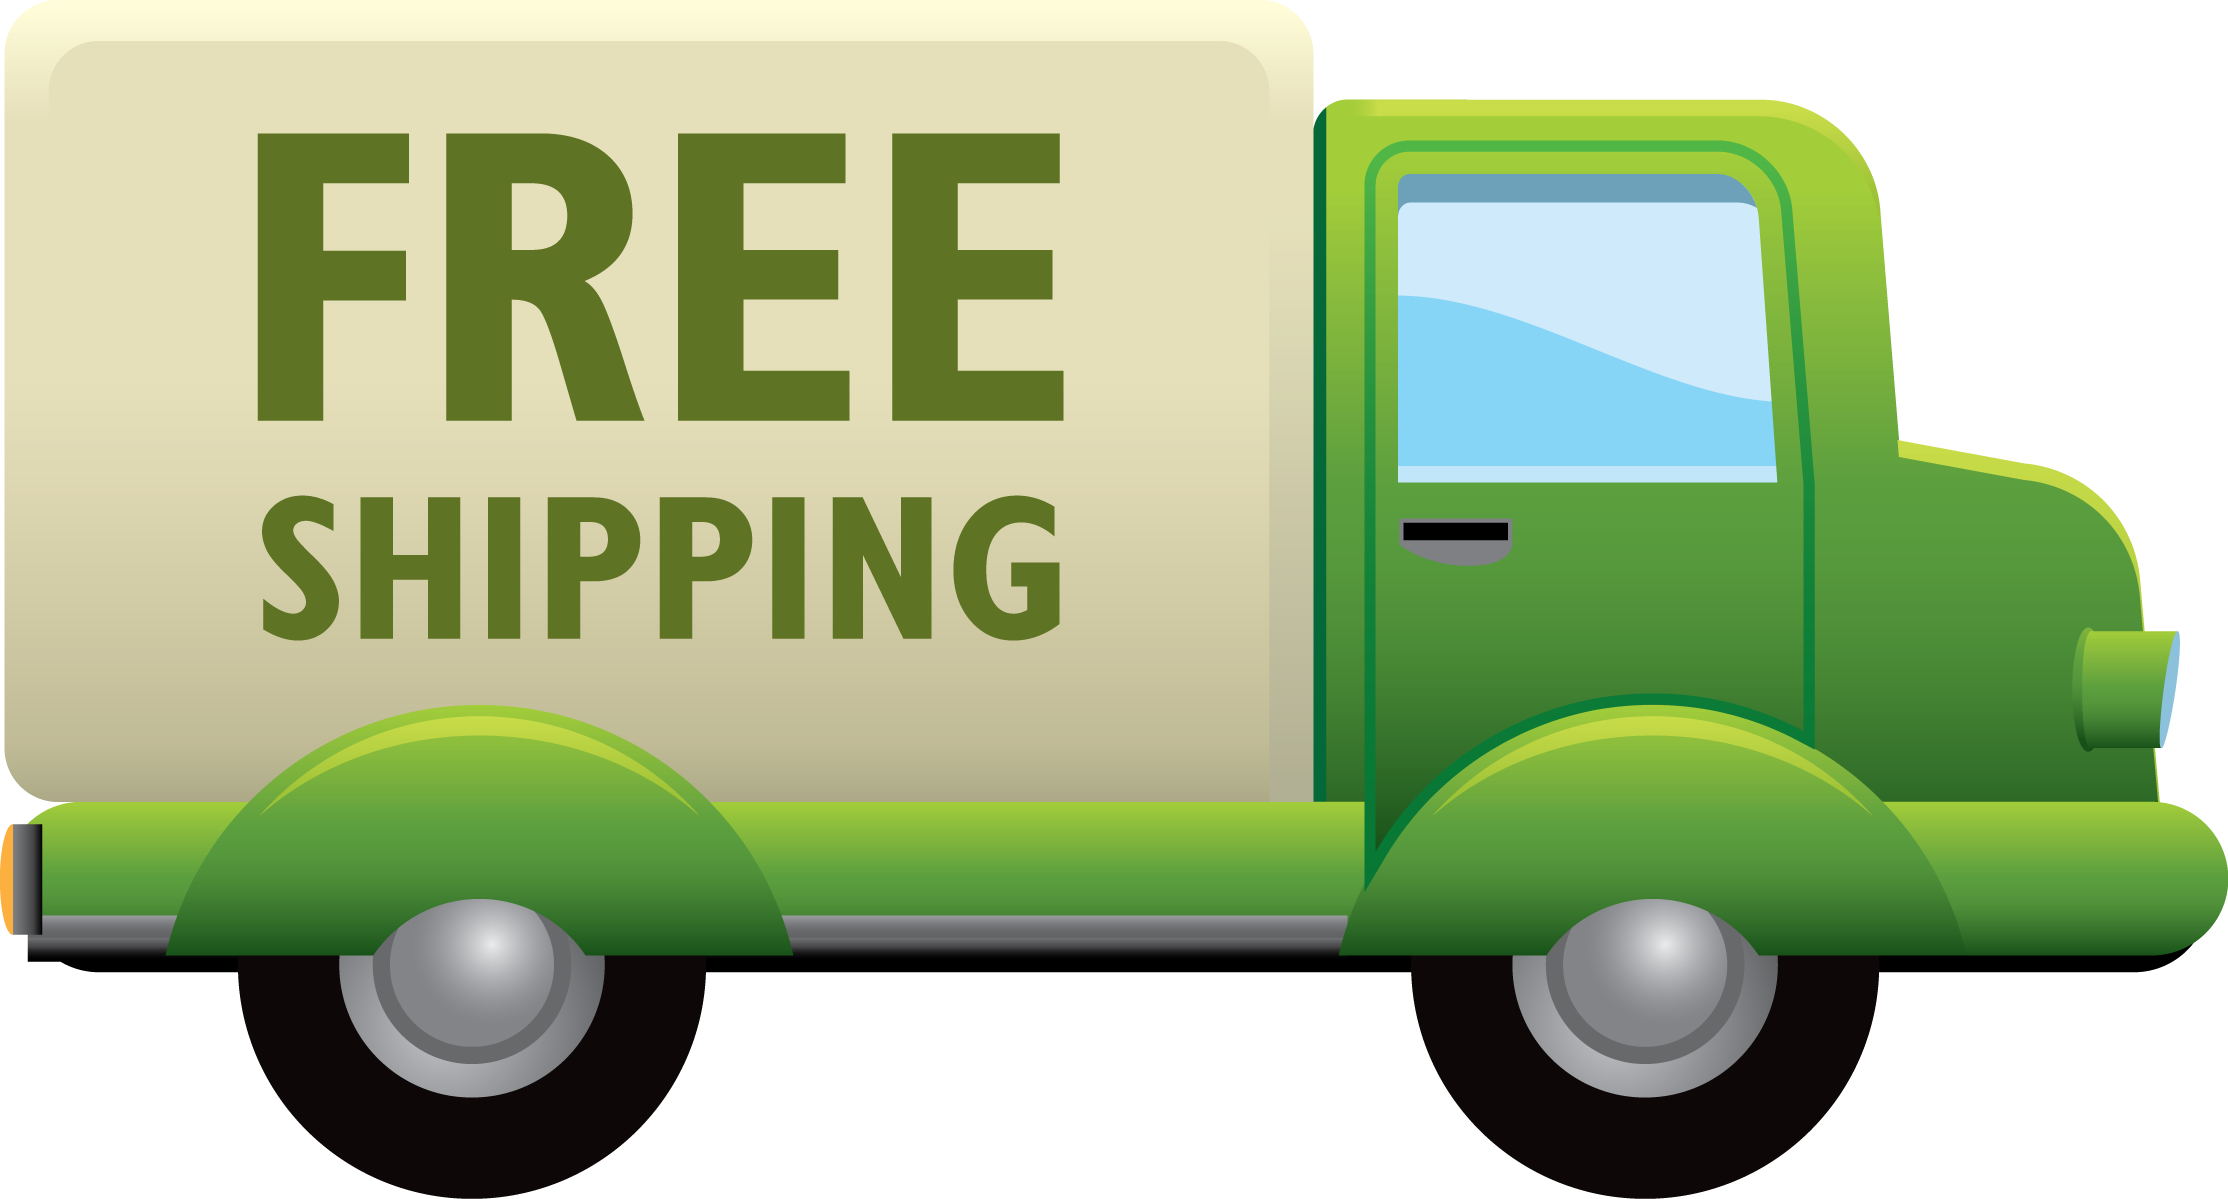 iherb free shipping code